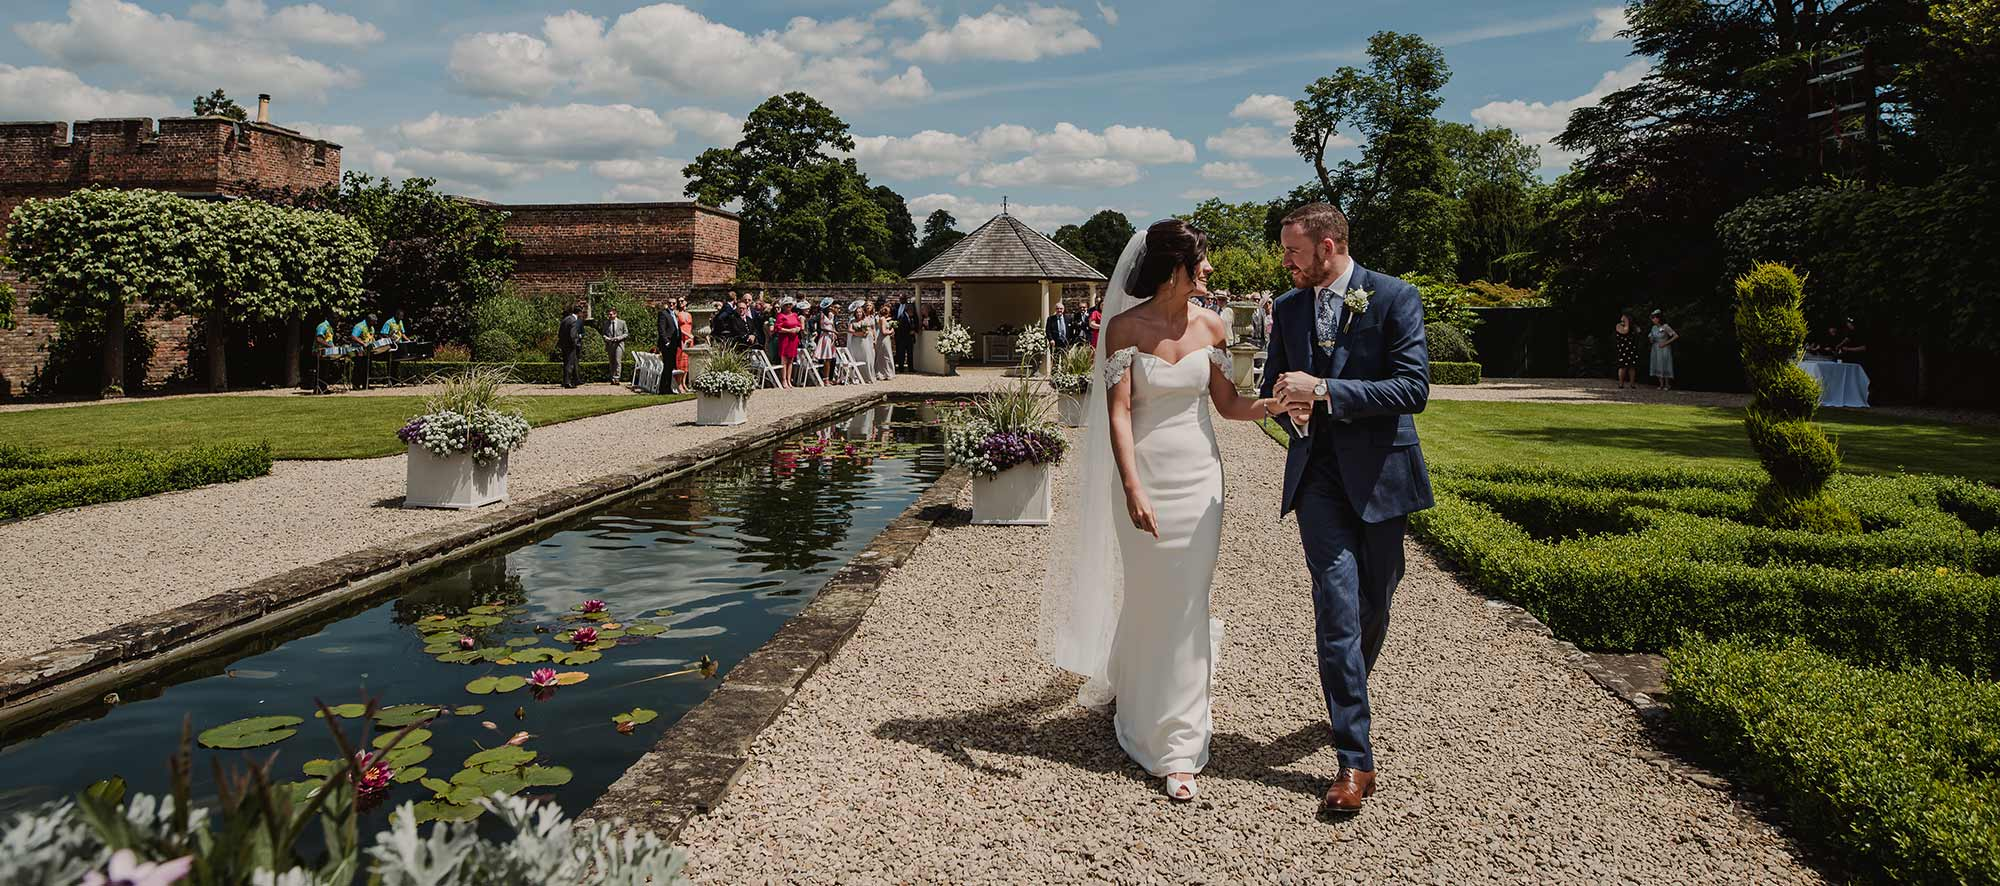 Wedding at Arley House and Gardens